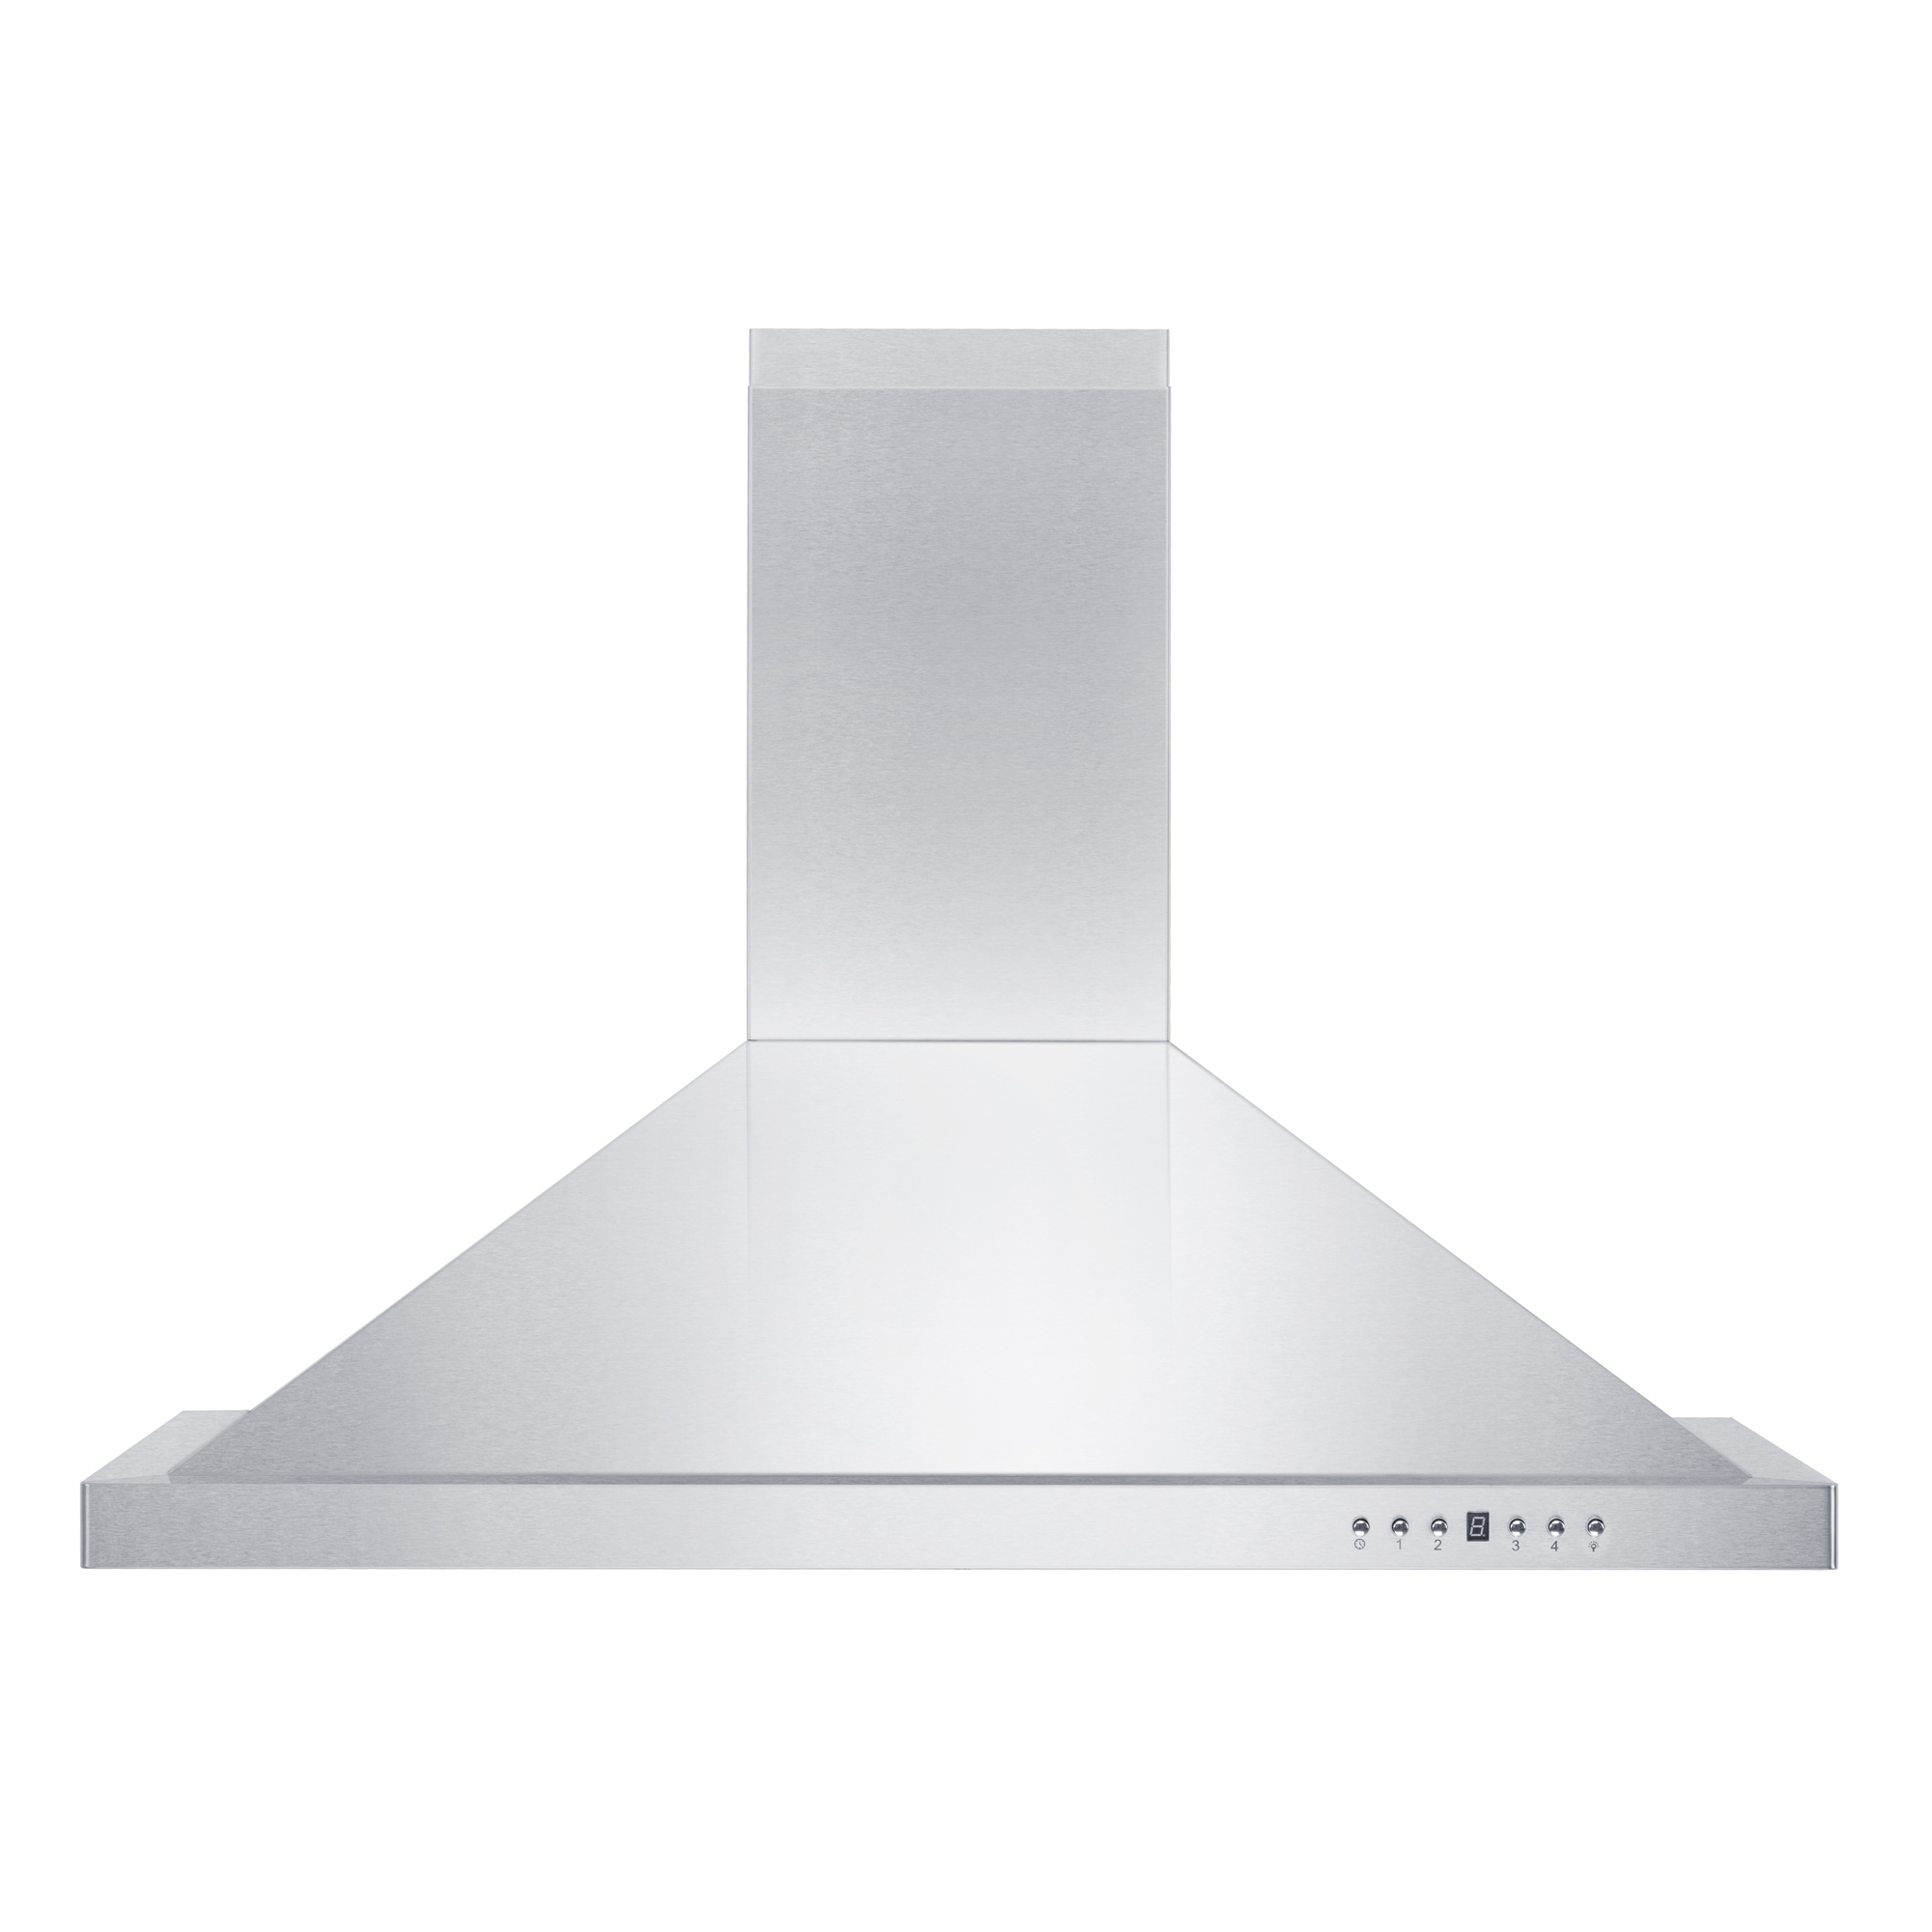 zline-stainless-steel-wall-mounted-range-hood-KB-new-front.jpg